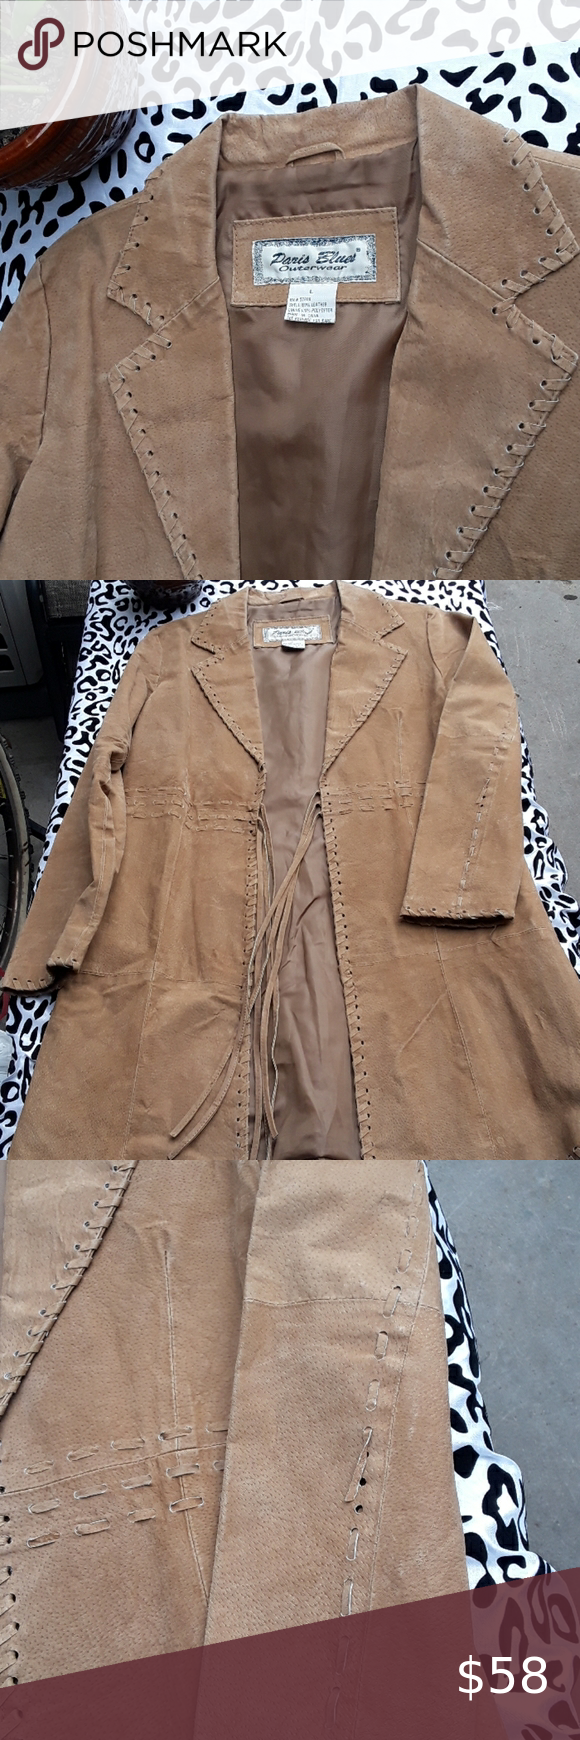 Paris Blue Leather Suede Jacket Leather Coat Runs Small A Few Broken Threads In Elbow As Jacket Has A Stiff Fit Paris Suede Jacket Leather Coat Blue Leather [ 1740 x 580 Pixel ]